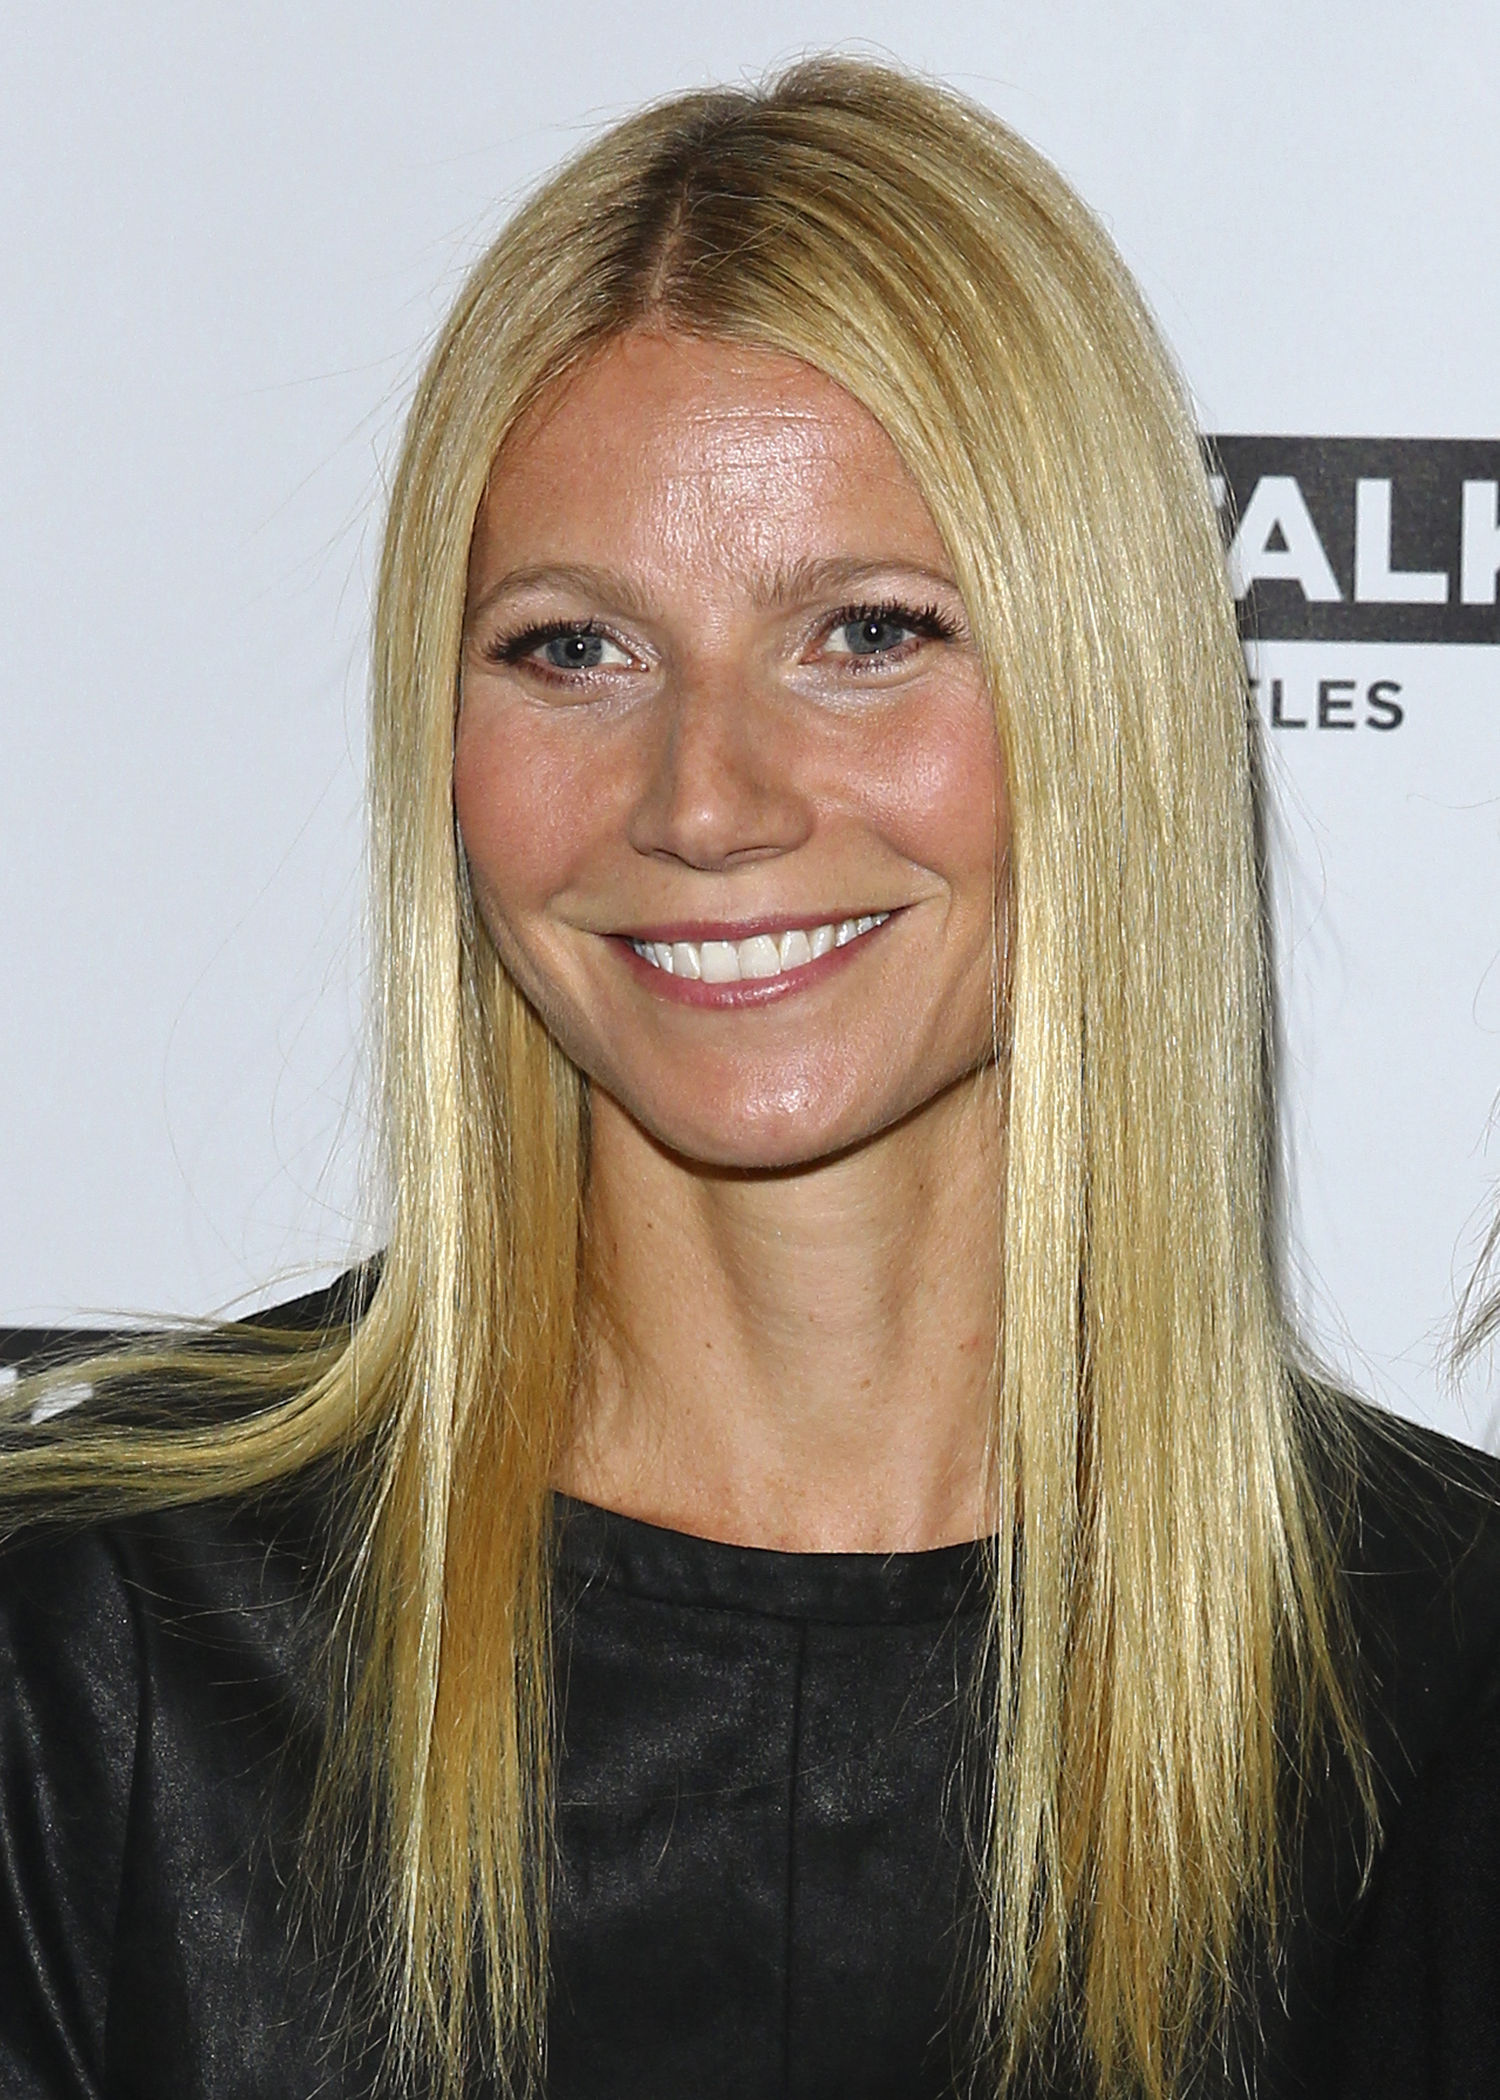 Amazing Gwyneth Paltrow Pictures & Backgrounds